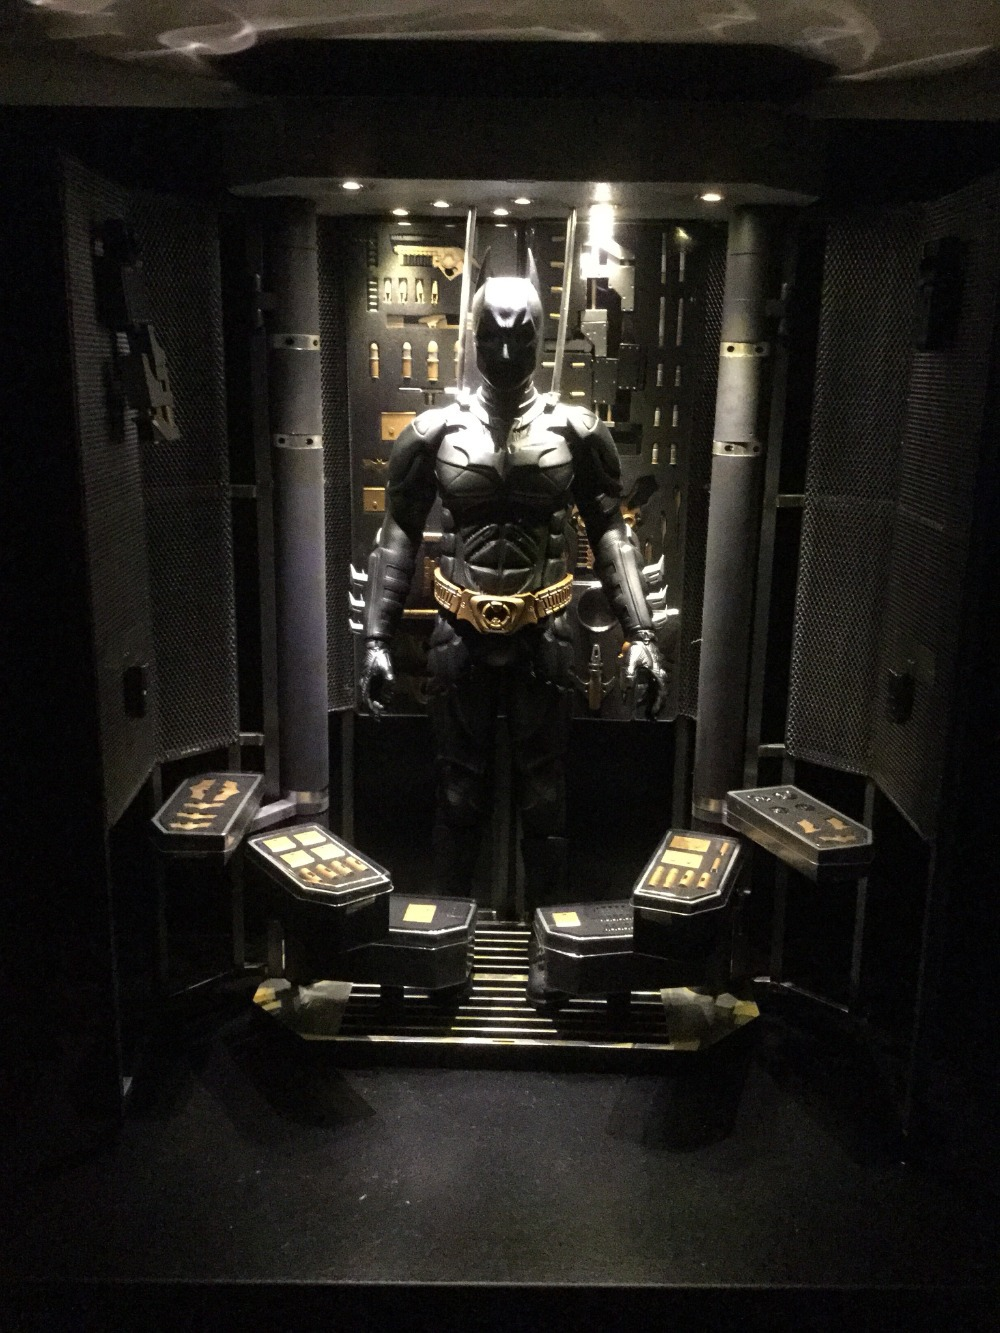 NEW 1/6 Batman arsenal, Weapon armor LED Storage cabinets model The Dark Knight 1:6 Batman action figure collection toy(China (Mainland))